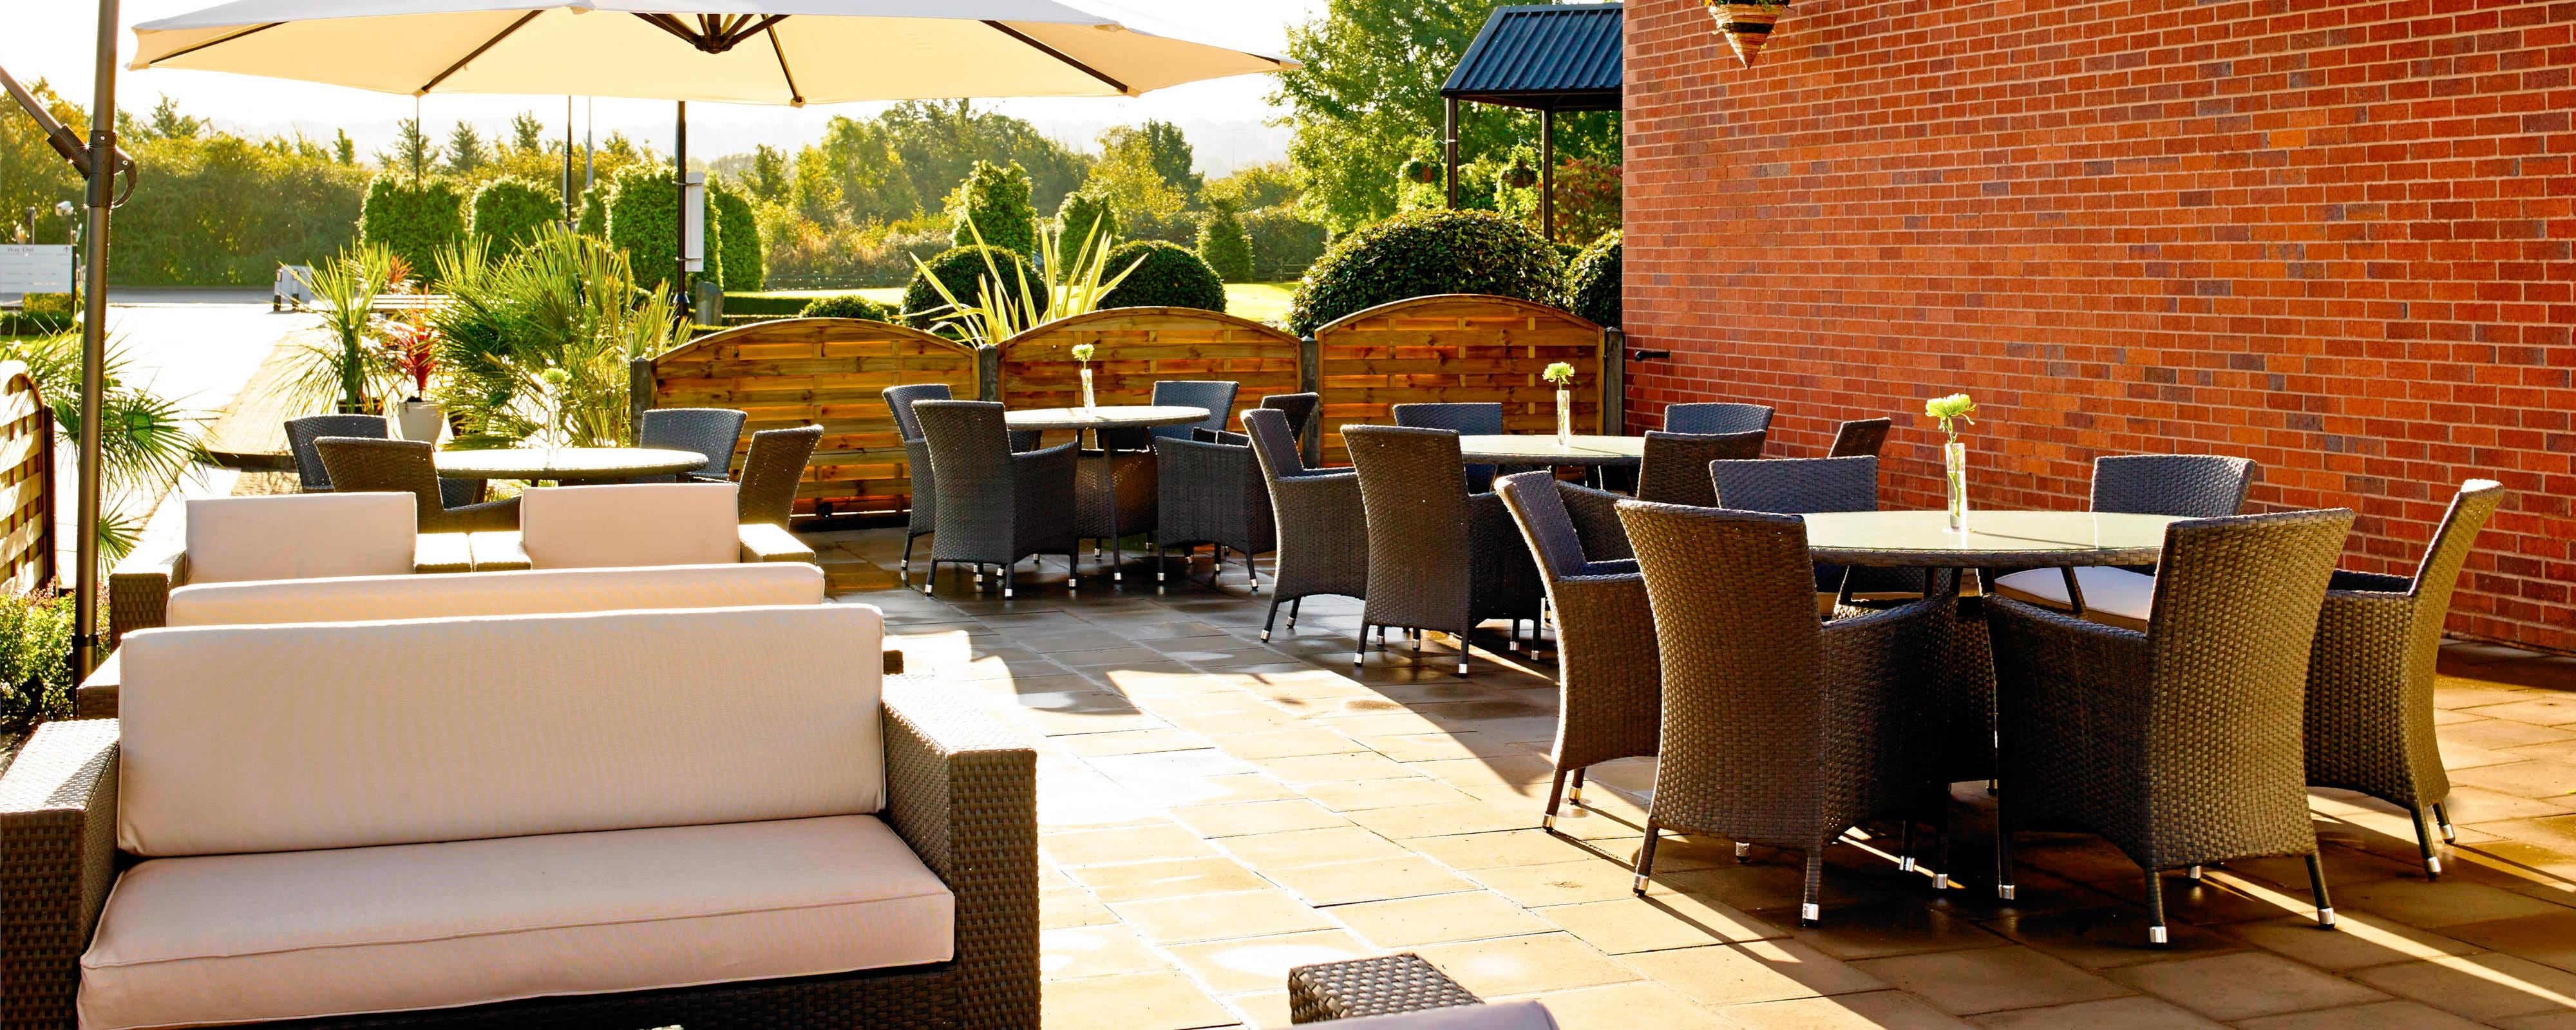 Patio all'aperto del Waltham Abbey Marriott